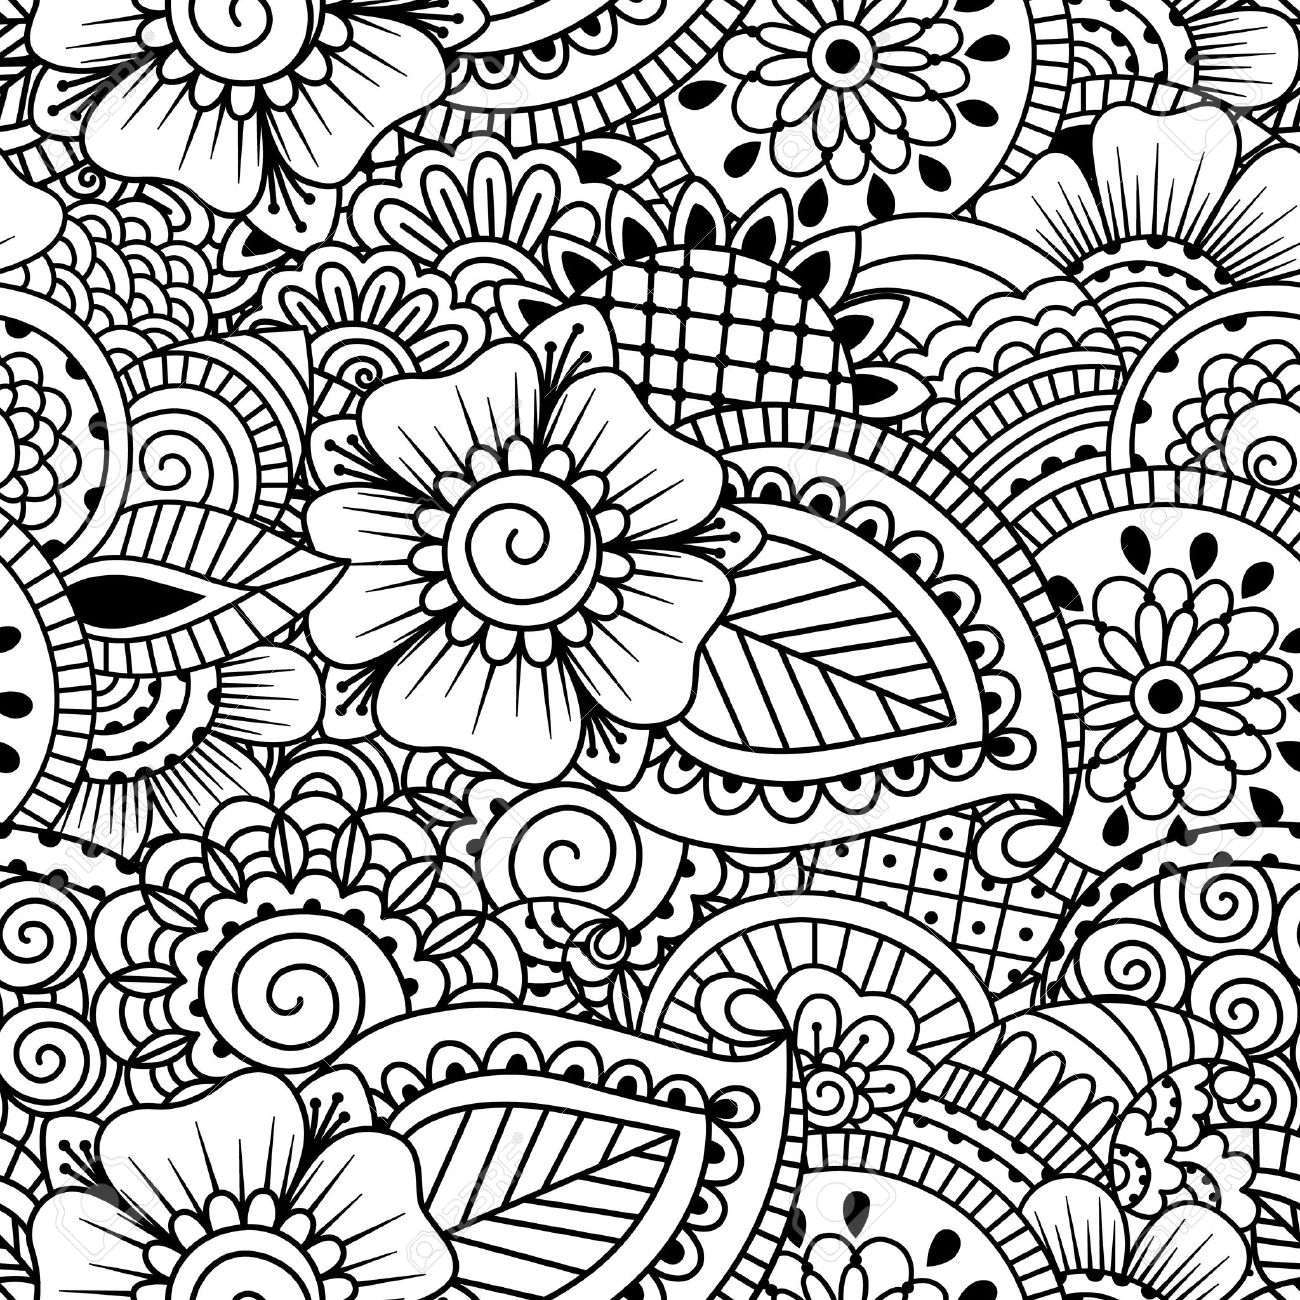 1300x1300 Henna Coloring Book Henna Inspired Coloring Book